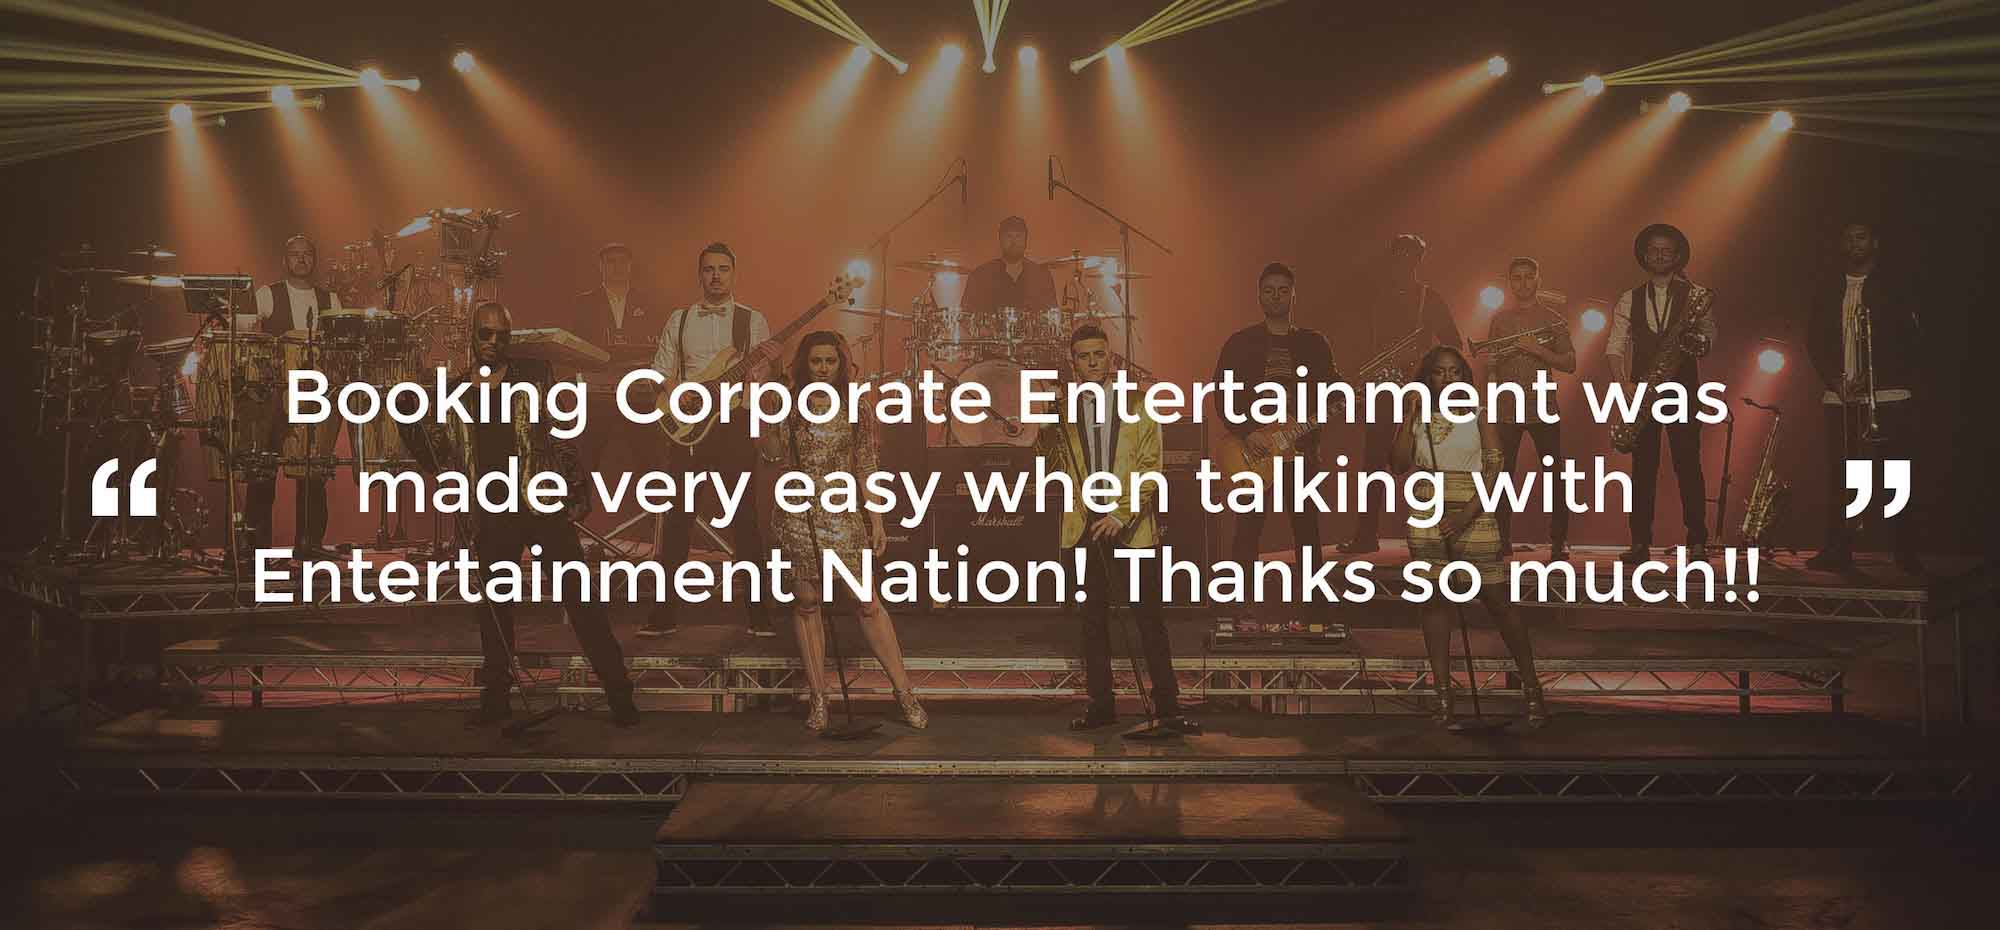 Client Review of Corporate Entertainment Central Scotland